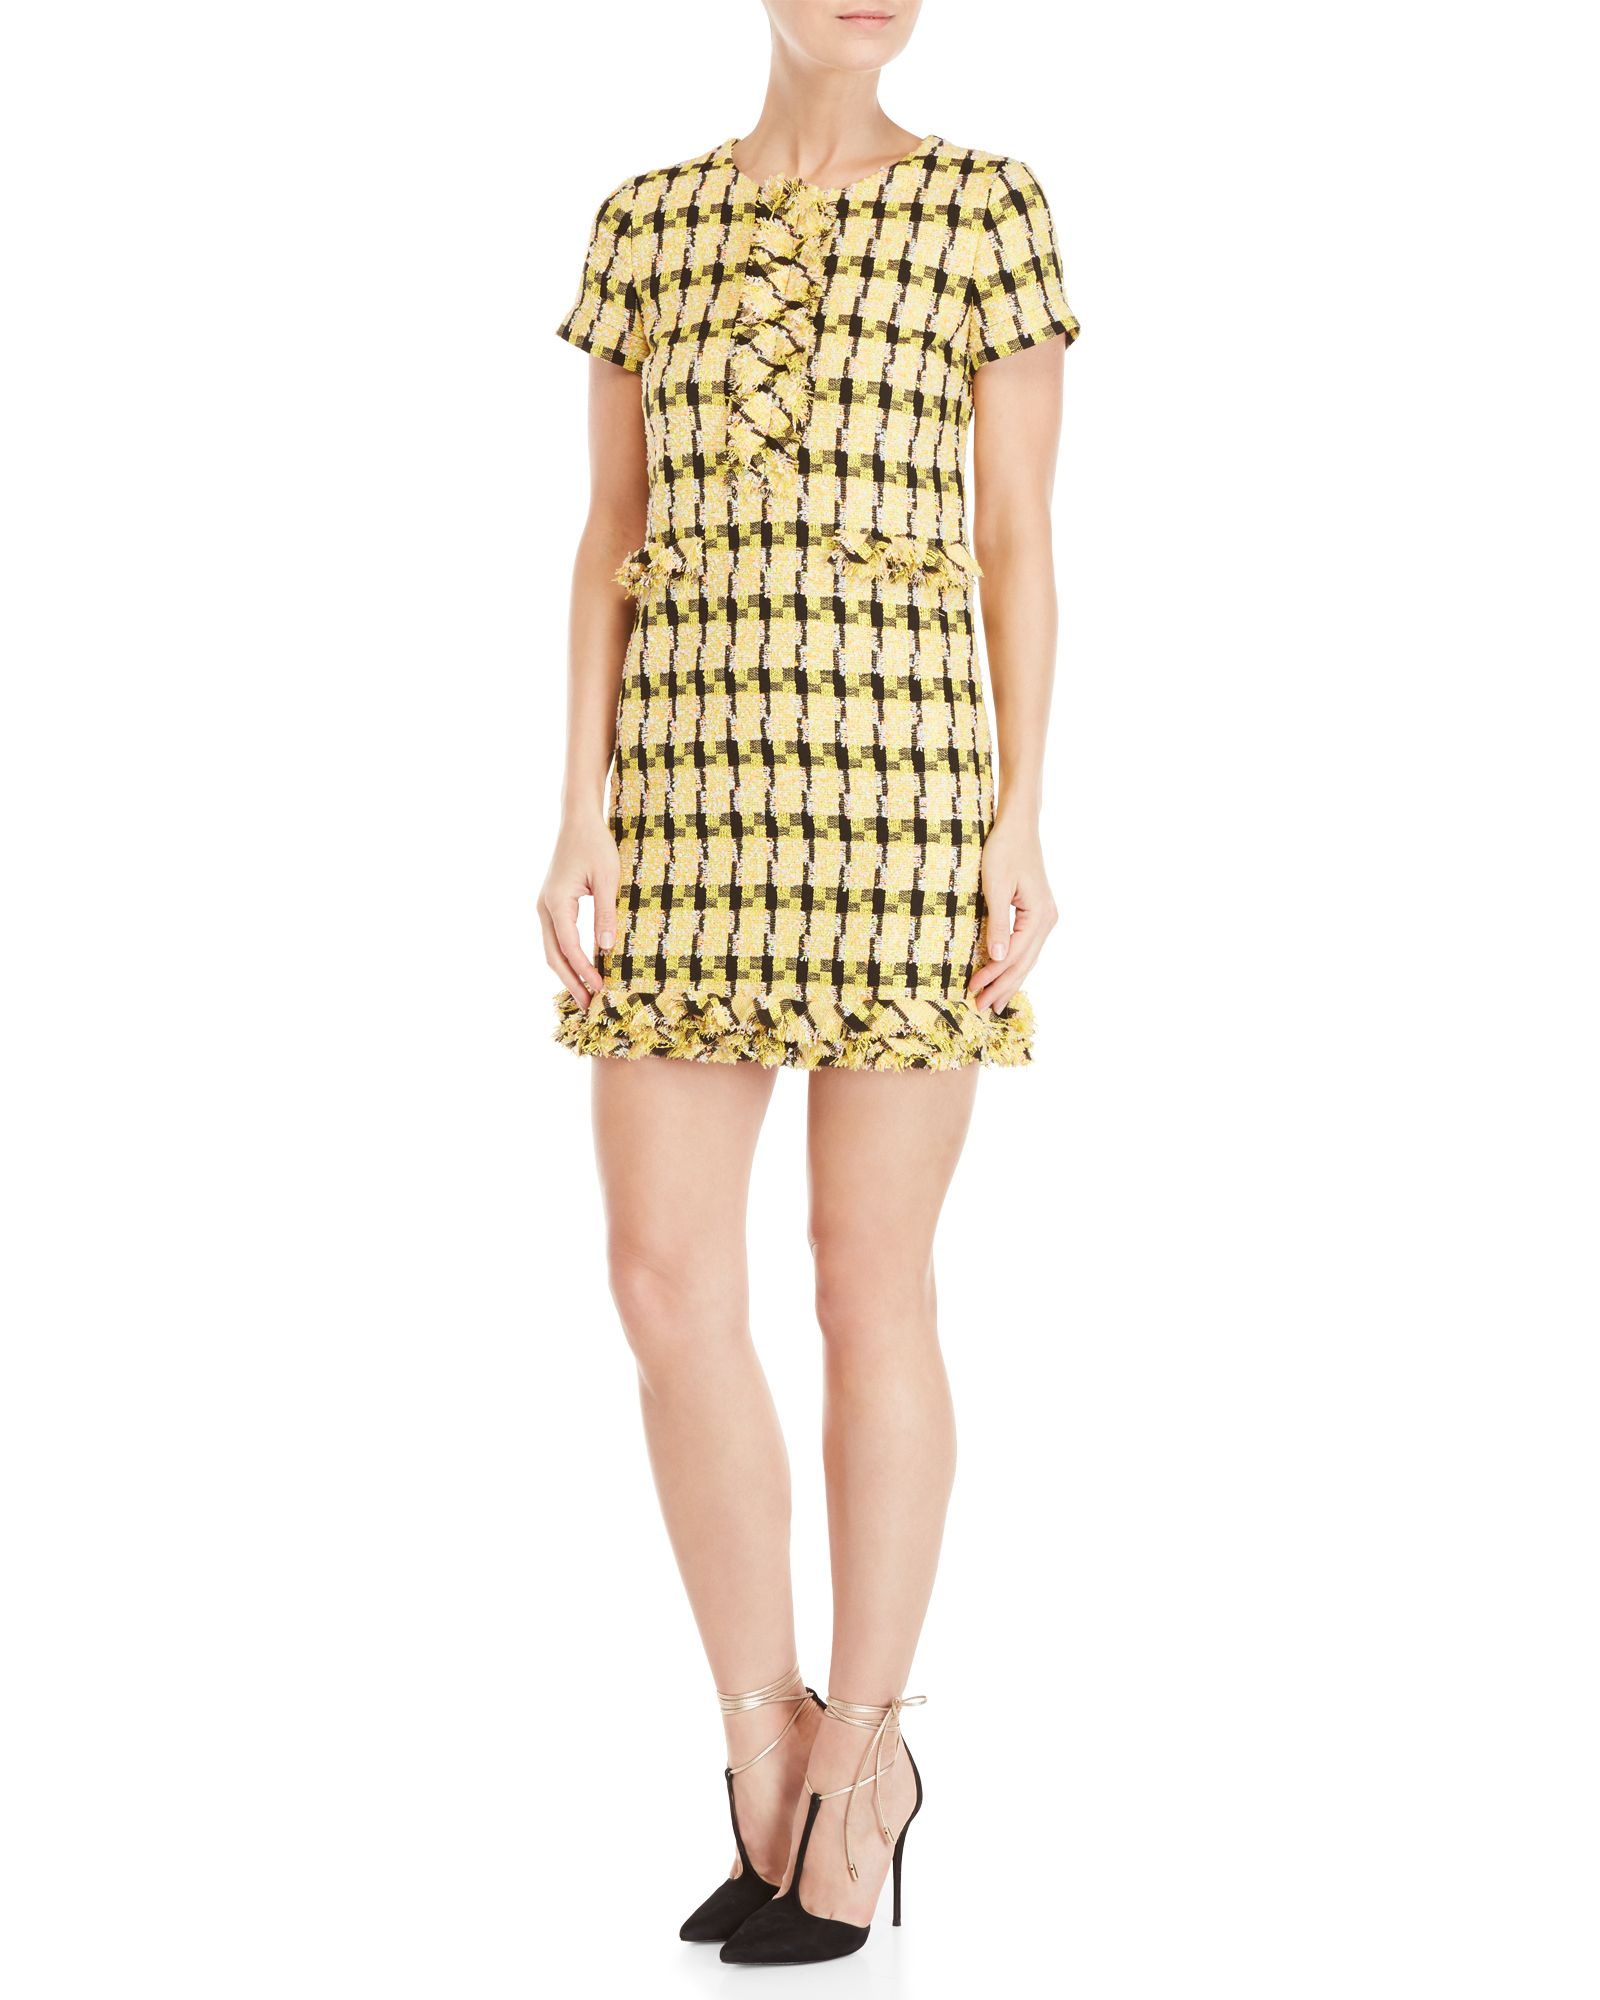 4184ce1a46 Yellow Tweed Short Sleeve Shift Dress in 2019 | *Apparel ...